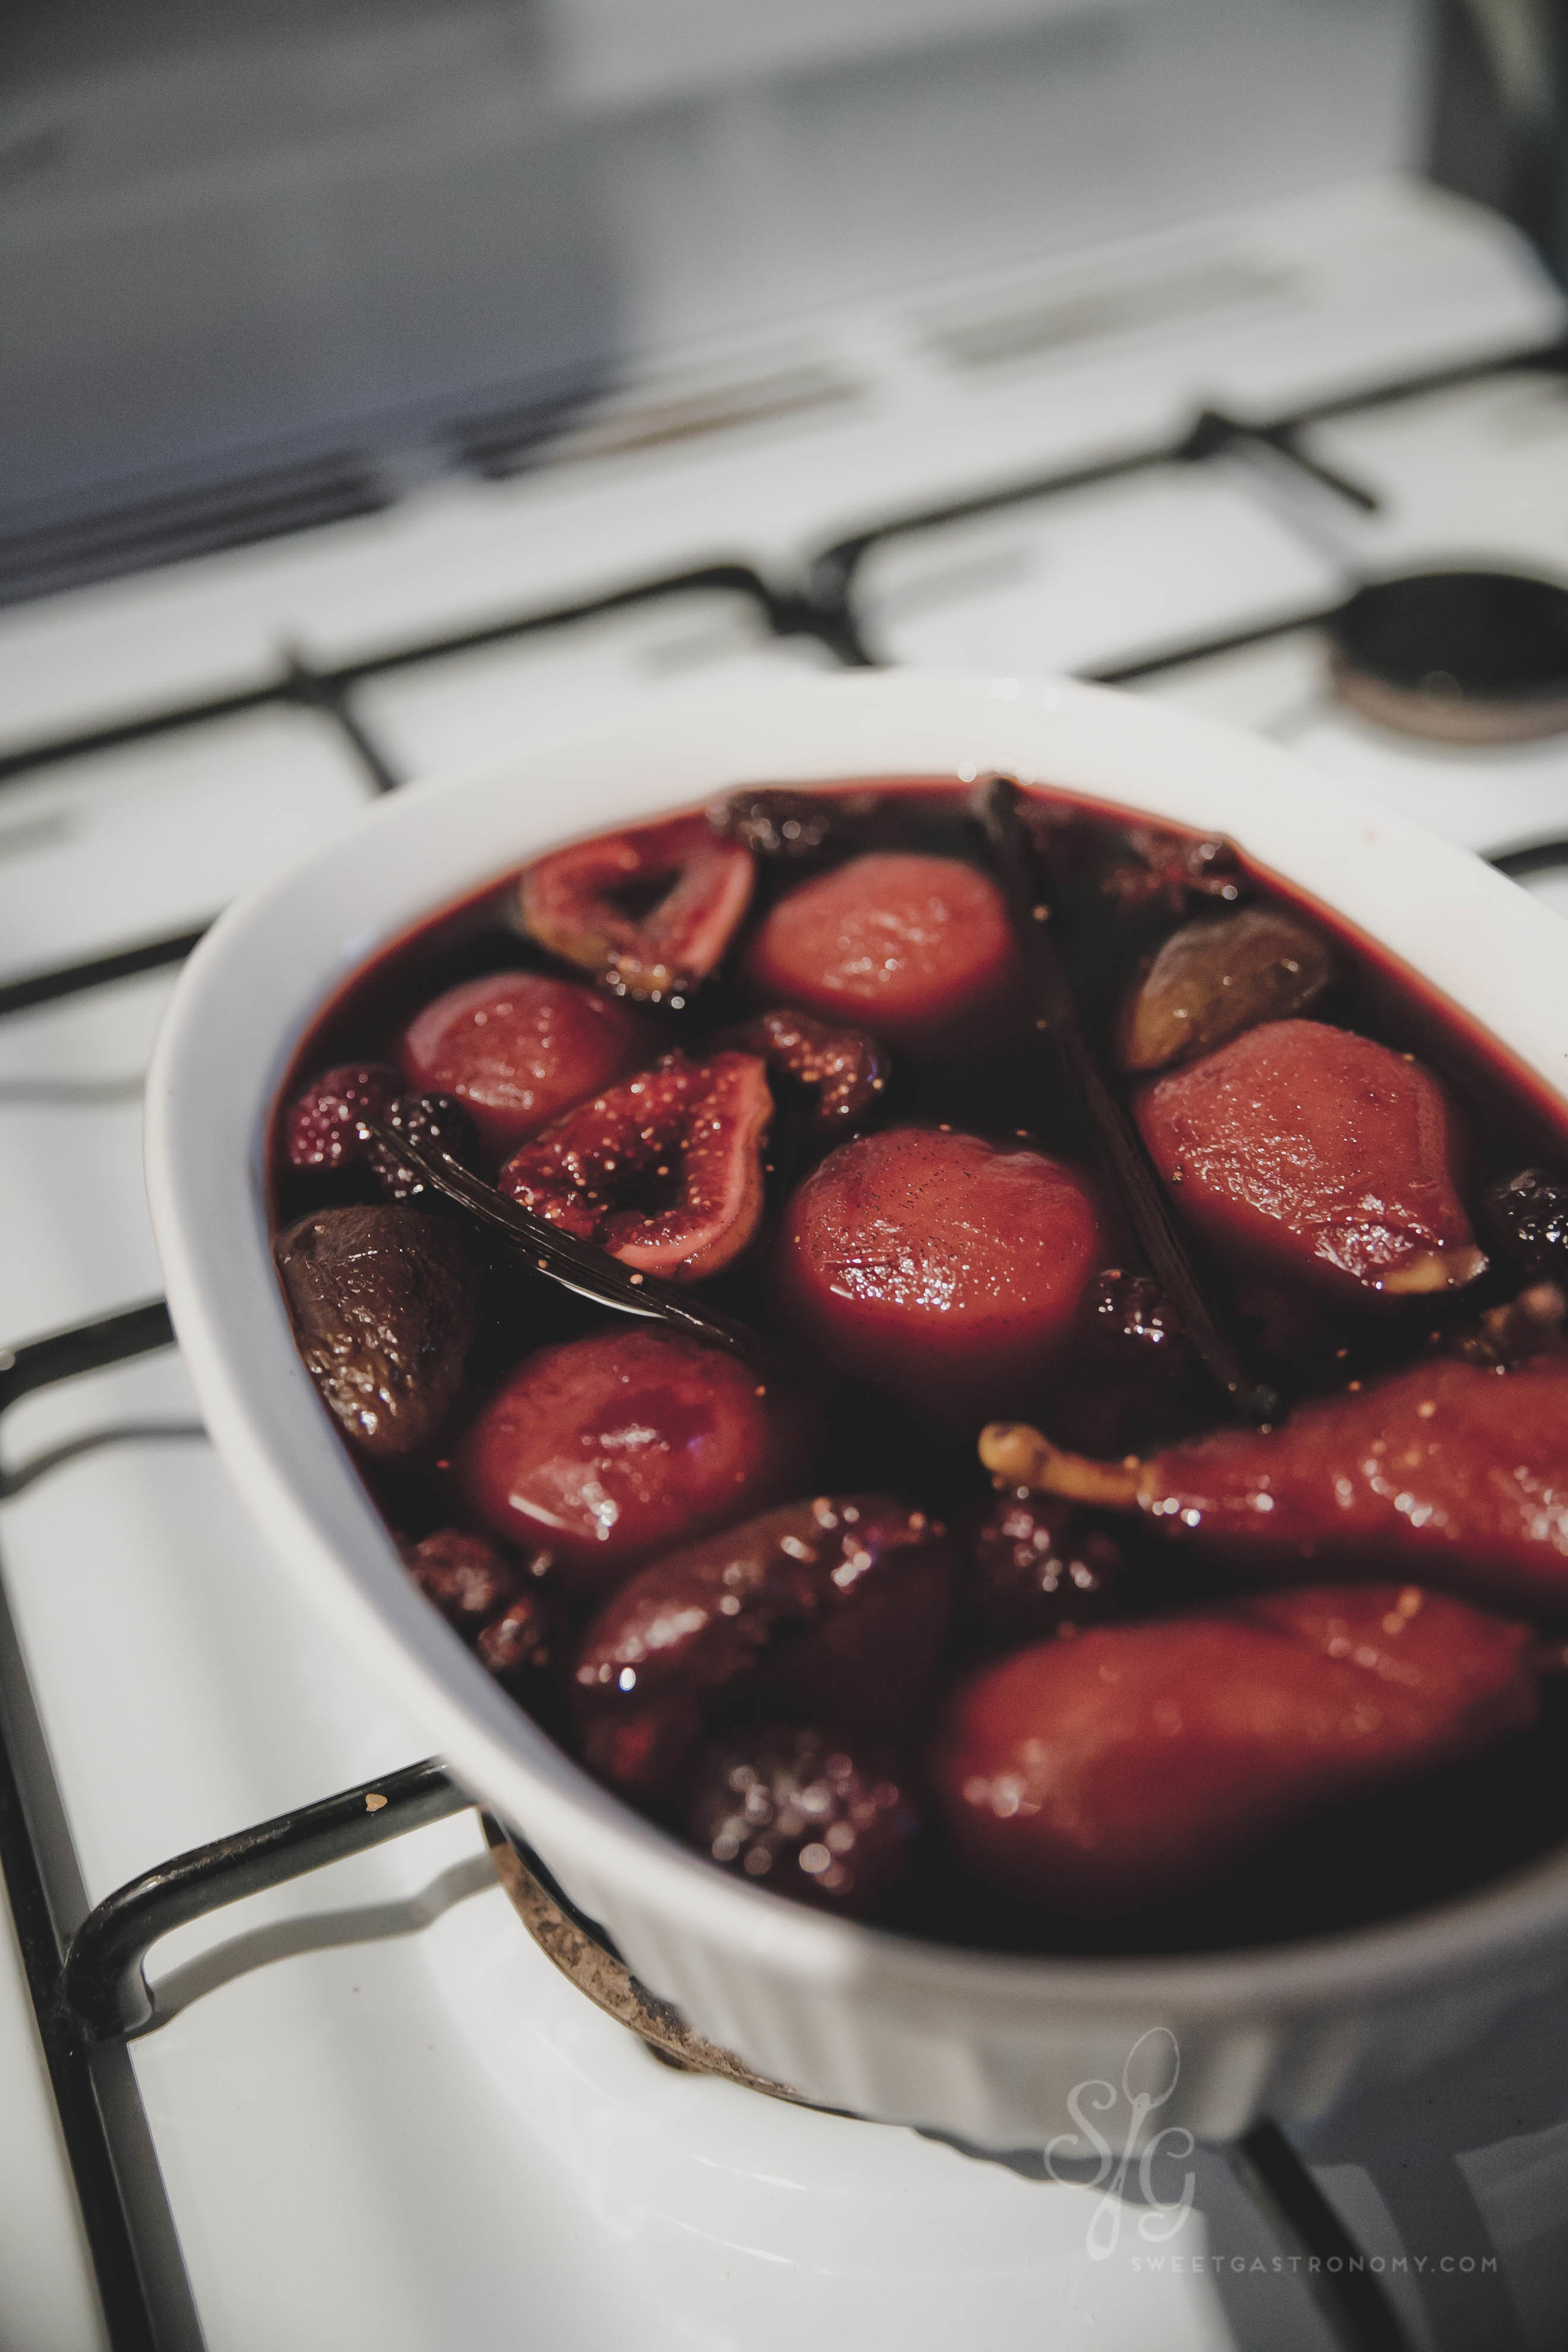 Poached! Leave in the fridge overnight to soak up more of the red wine liquid.